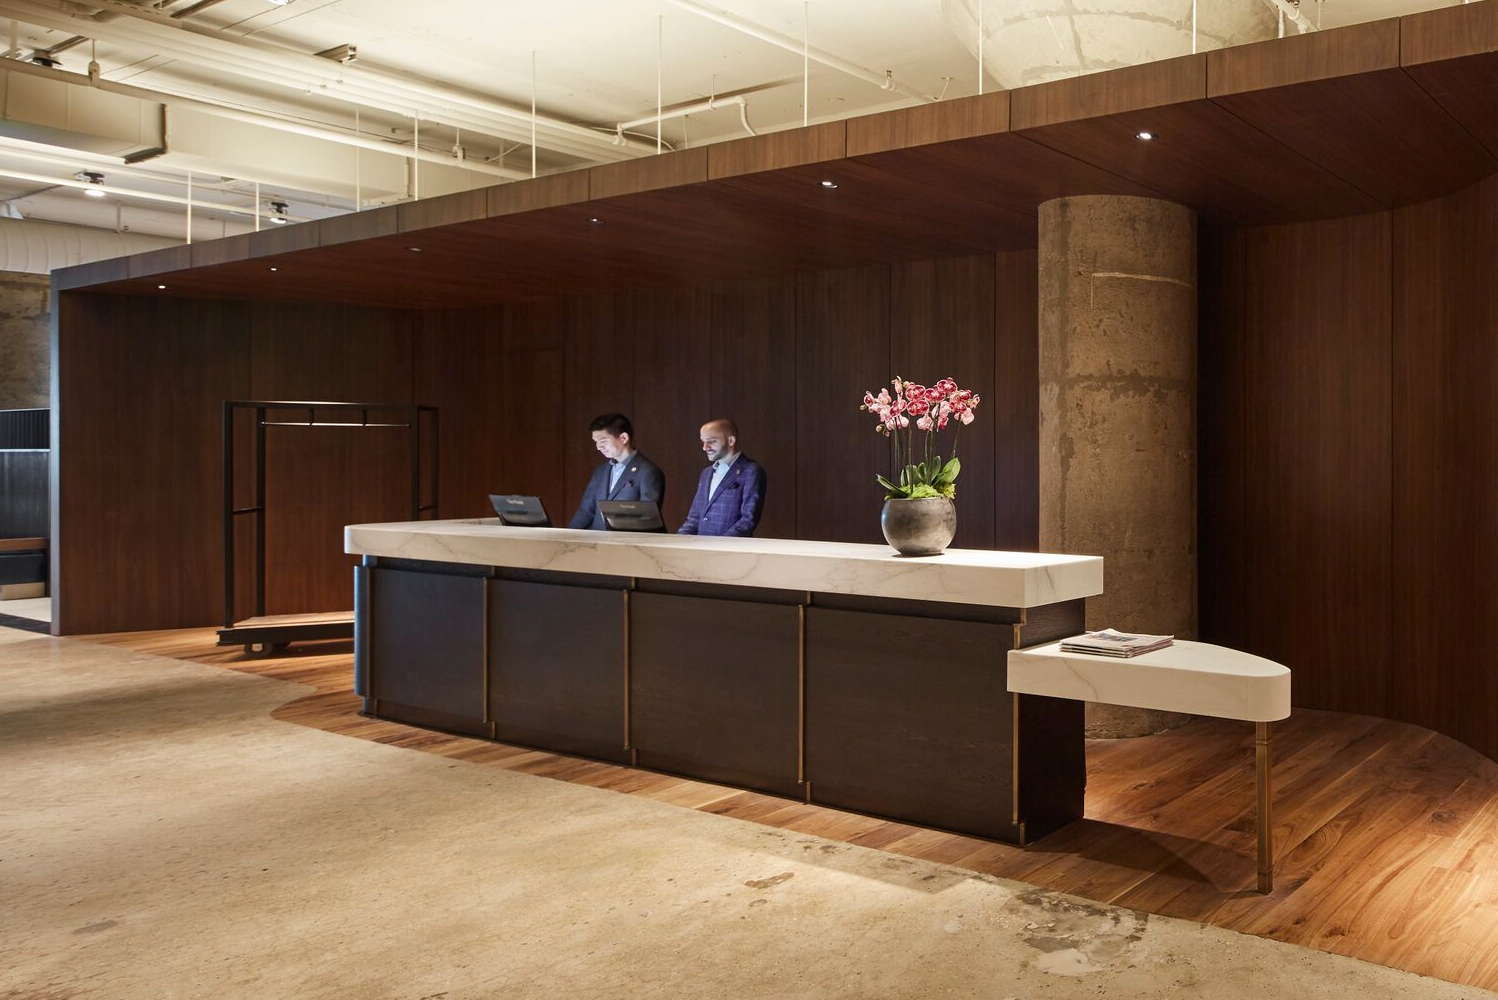 Private lifestyle Fitler Club opens in Philadelphia | Hotel